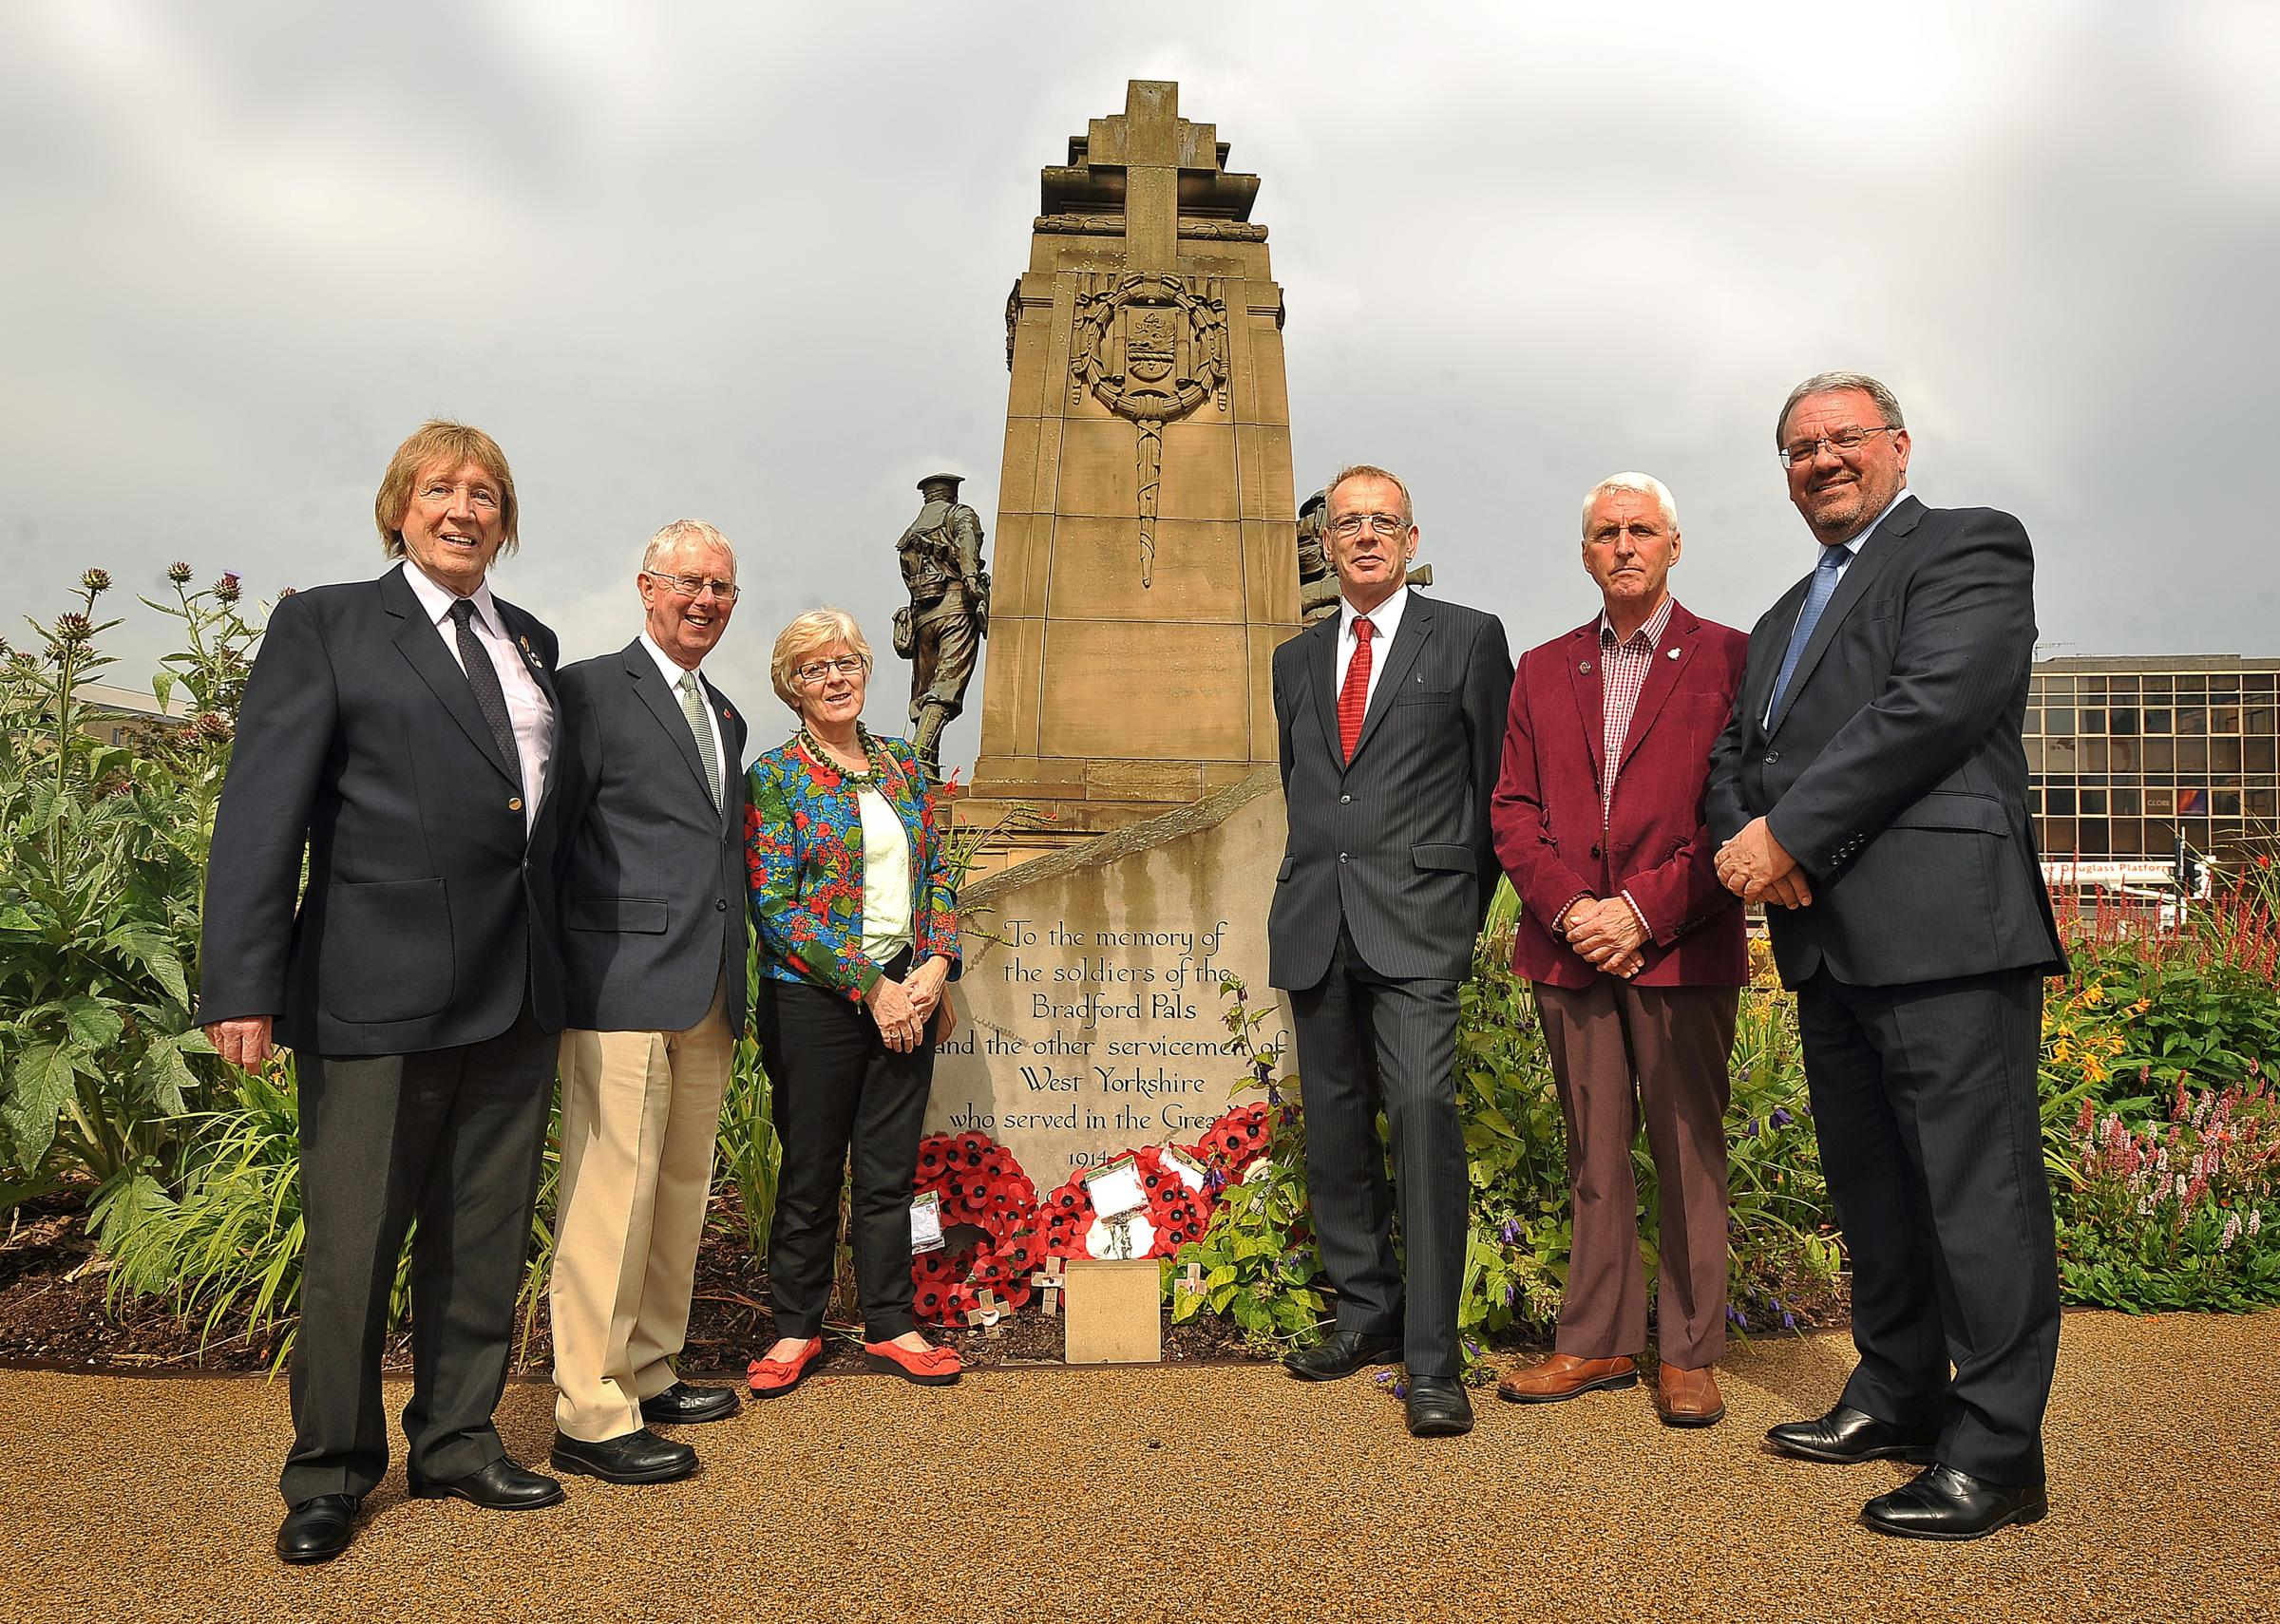 Help to honour city's WW1 heroes with appeal to raise money for new  Bradford Pals memorial